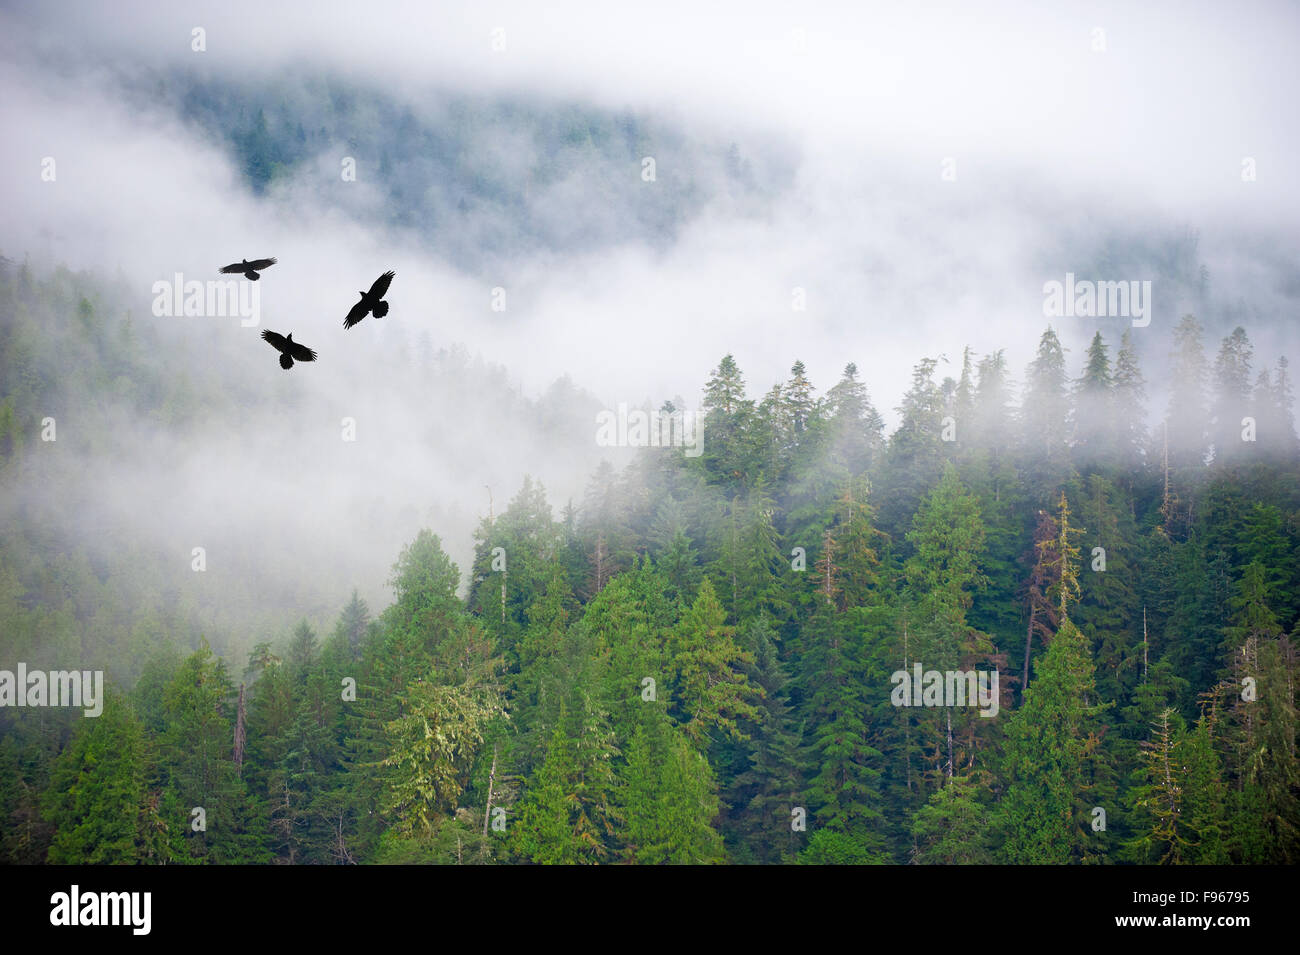 A trio of raven (Corvus corax) fly above the Great Bear Rainforest, westcentral coastal British Columbia, Canada - Stock Image